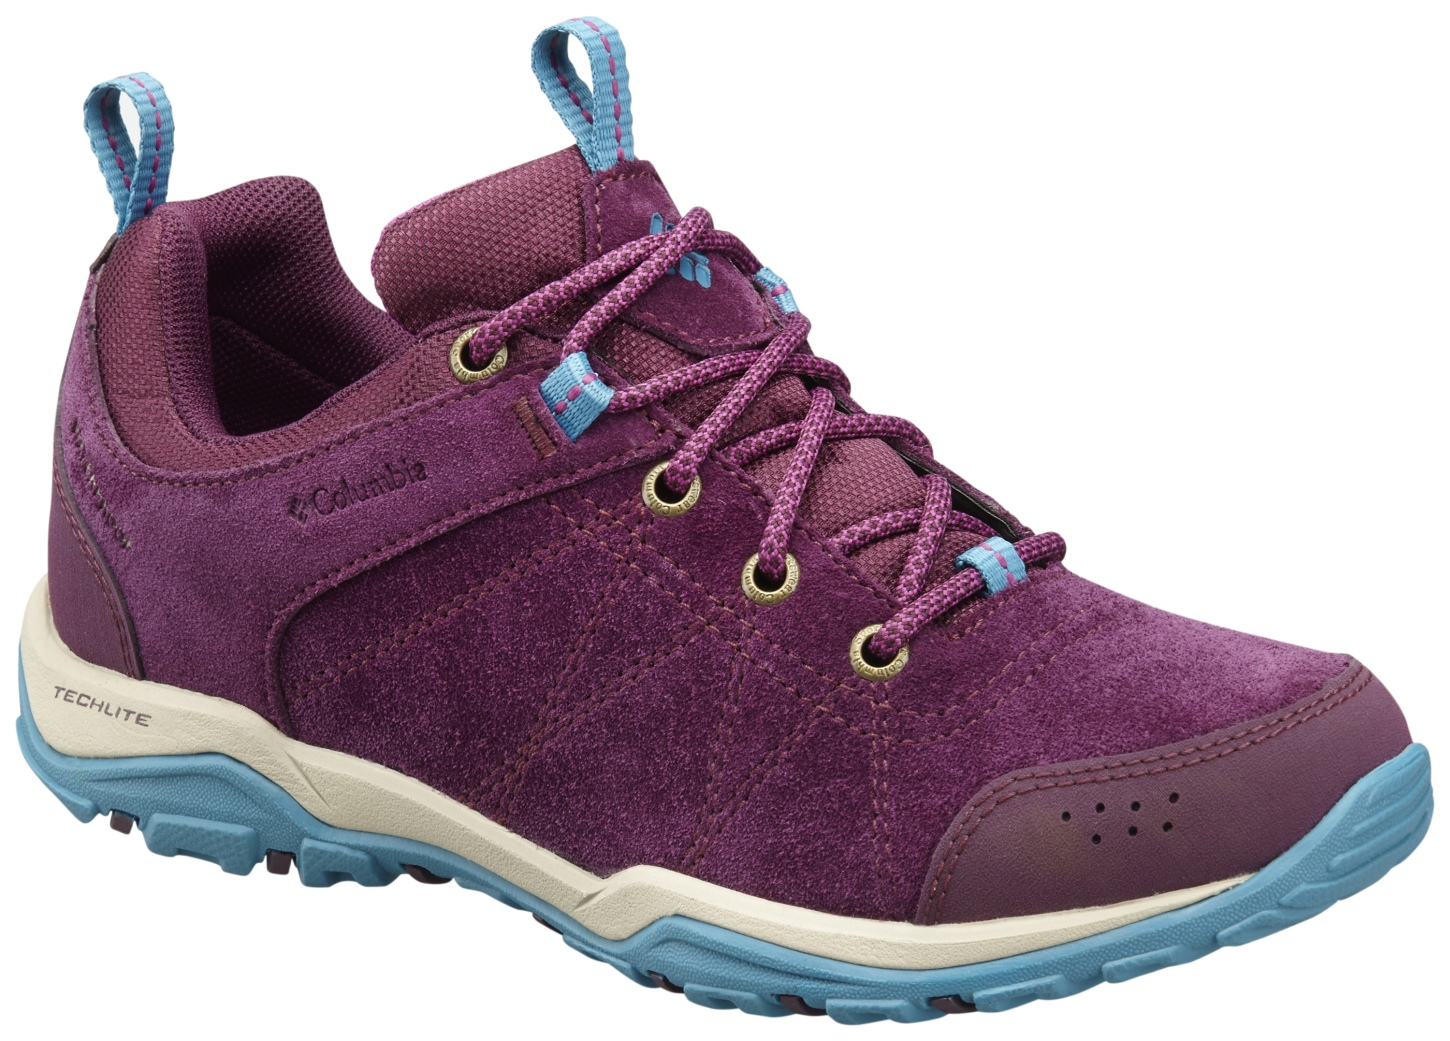 Columbia Women's Fire Venture Low Waterproof Shoes Purple Dahlia, Intense Violet-30